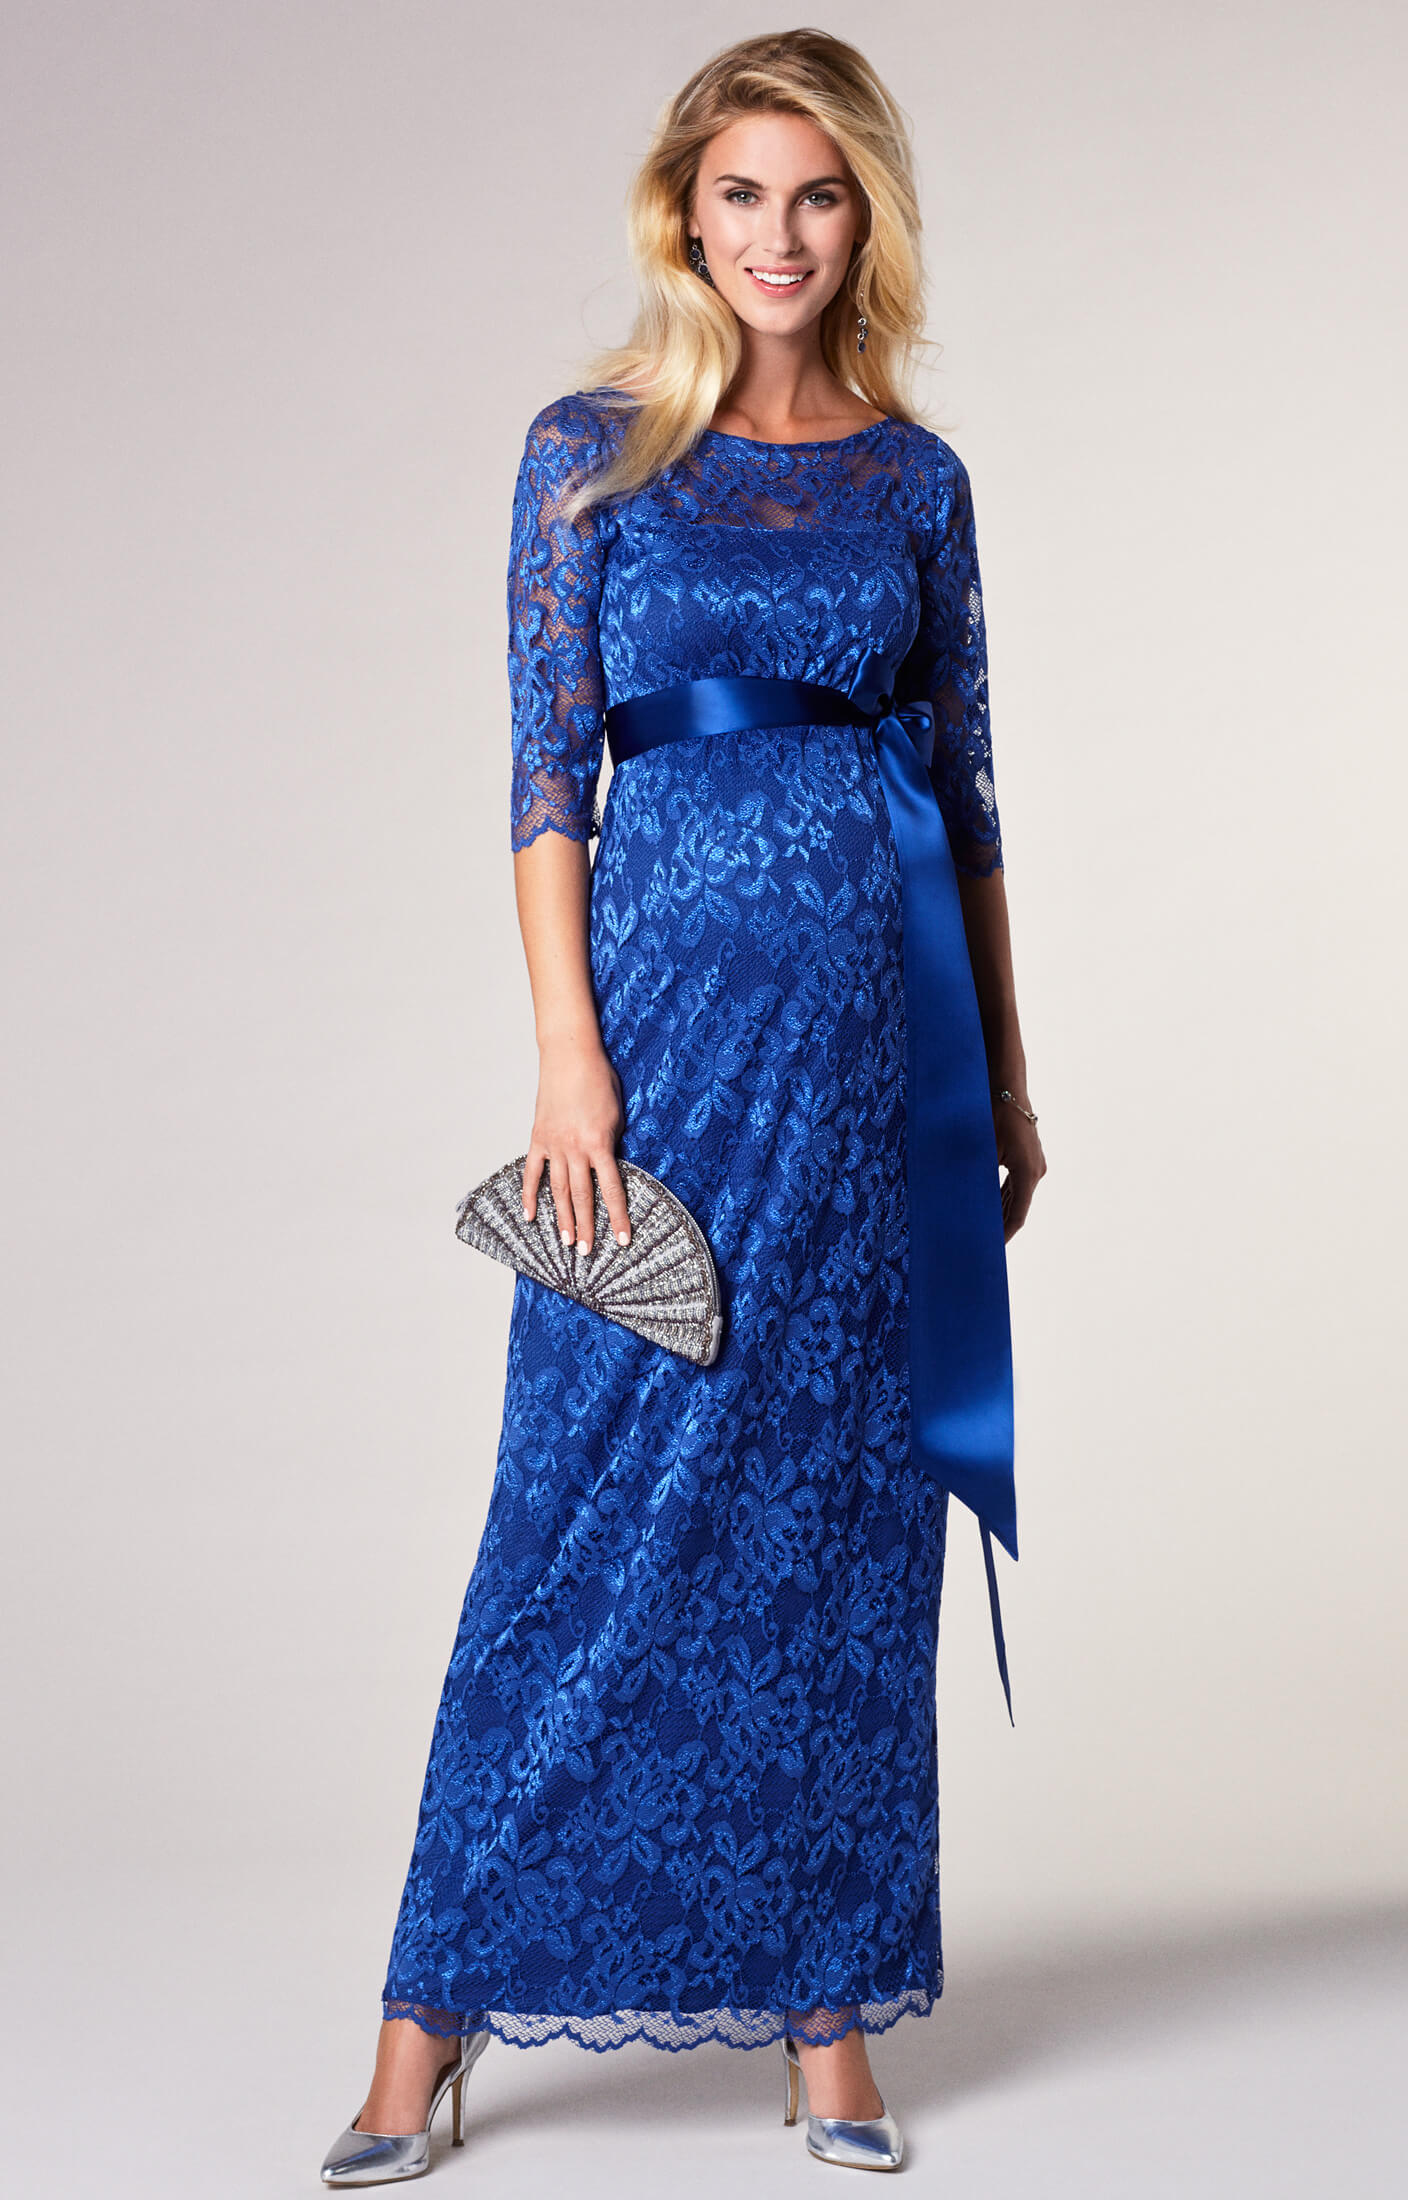 Maternity bridesmaid dresses amelia lace maternity dress long windsor blue ombrellifo Images